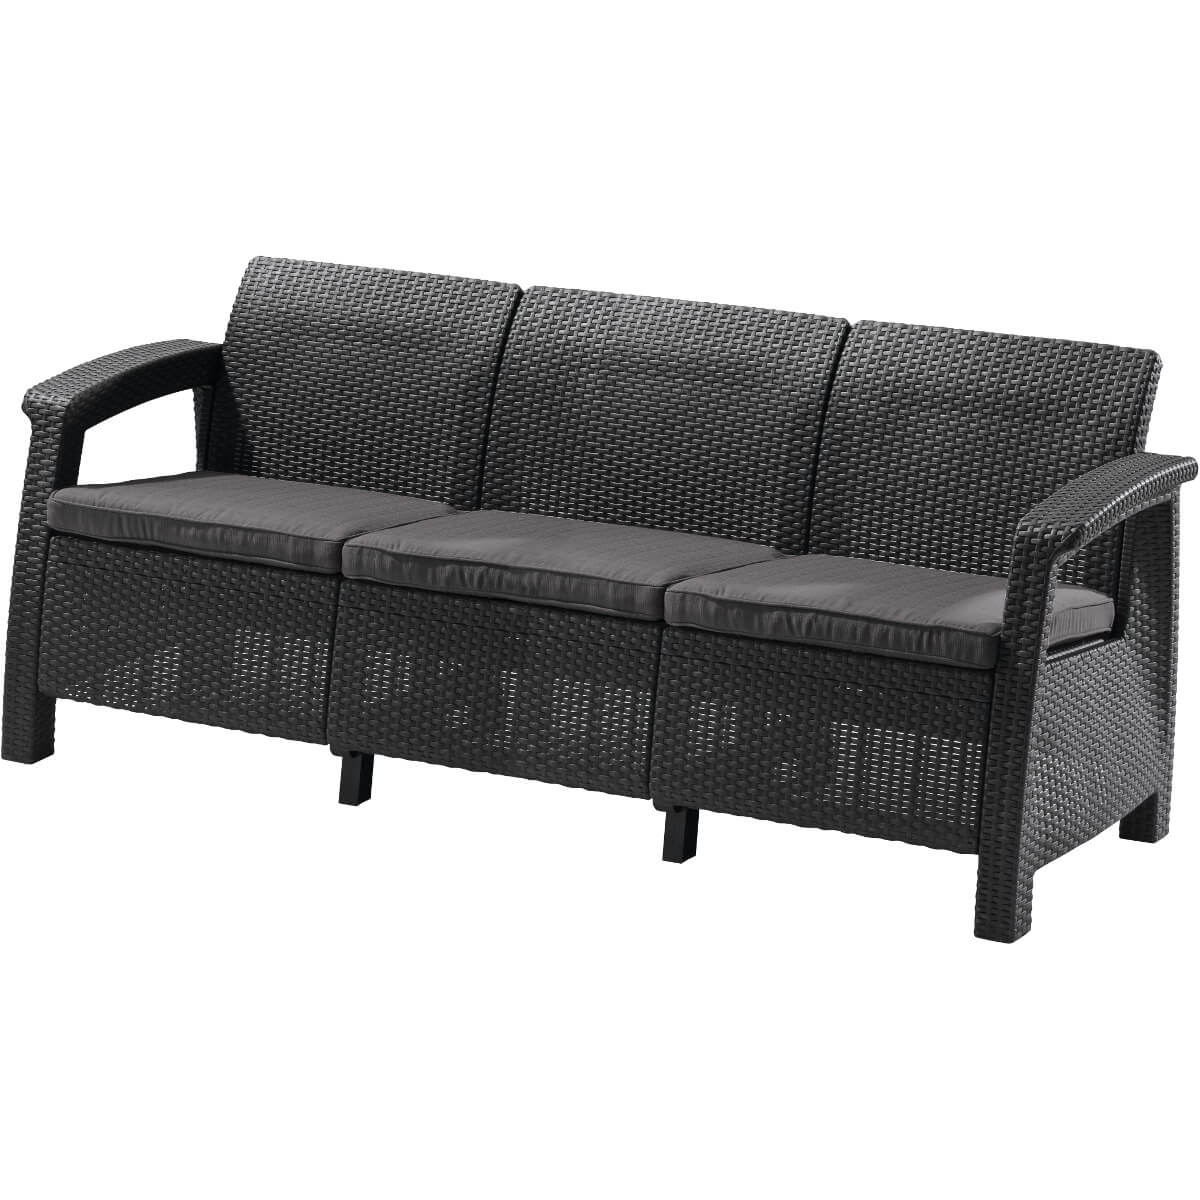 Диван Allibert Corfu Love Seat Max 17197959